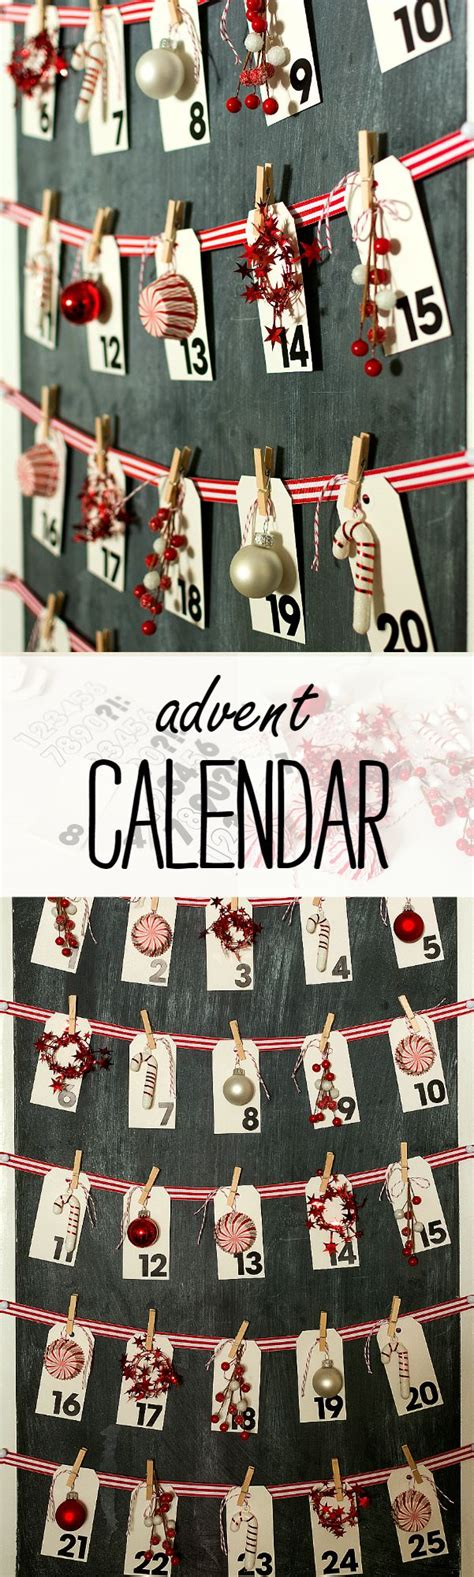 make your own calendar ideas 10 best ideas about advent calendars on